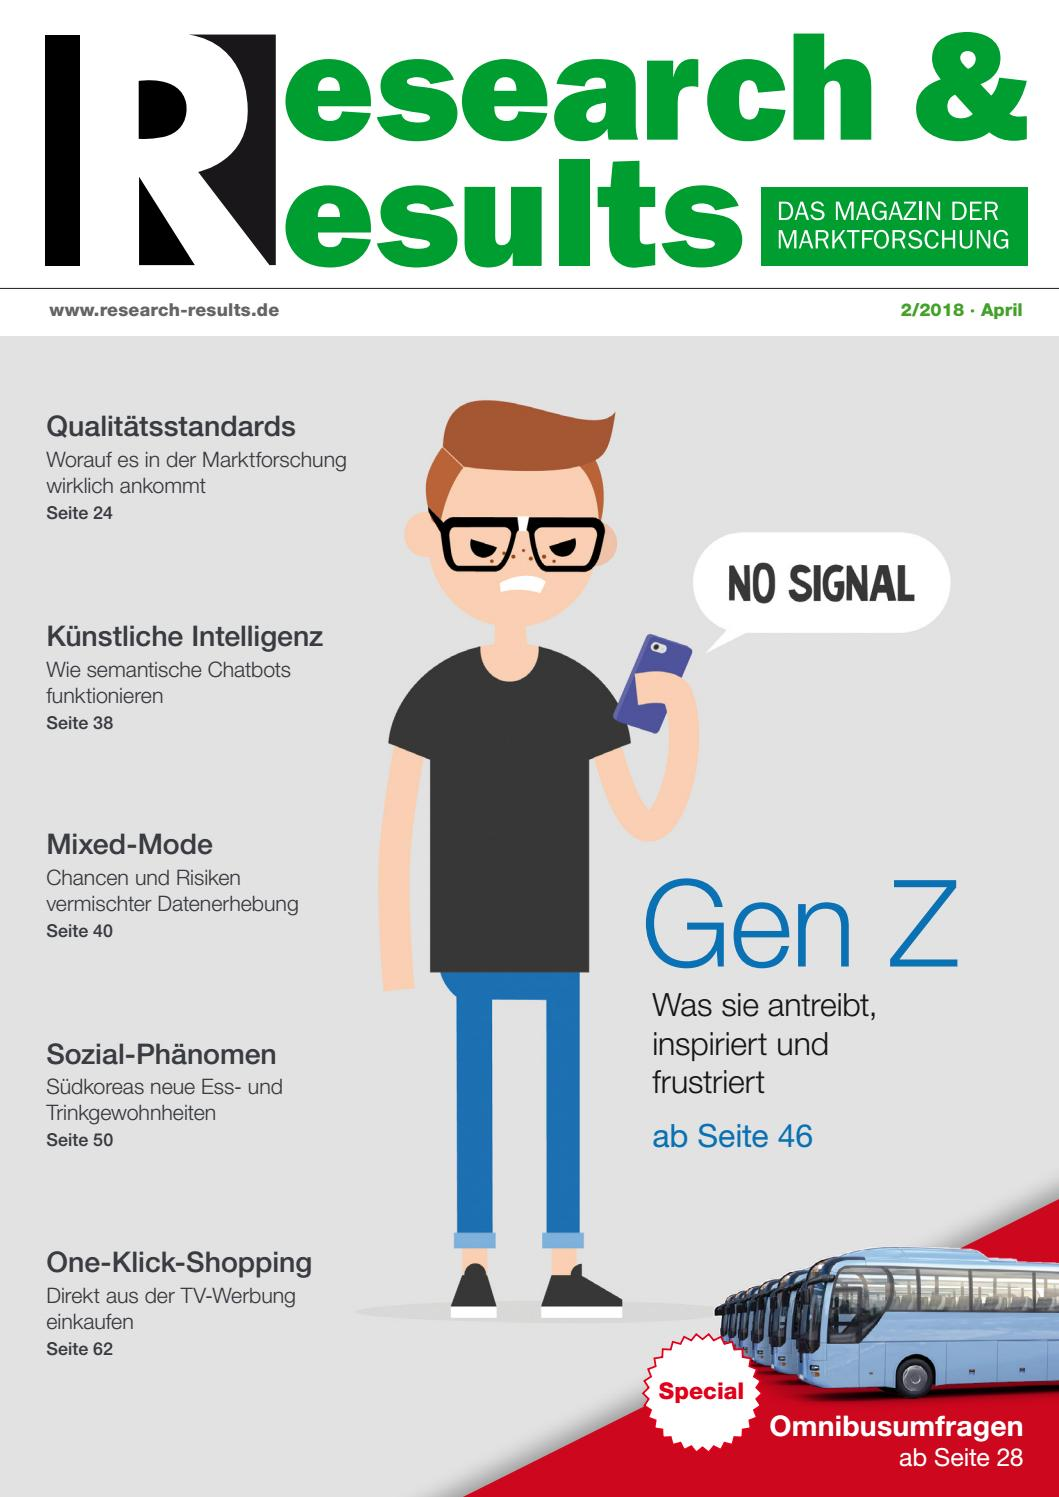 Research & Results 2/2018 by Research & Results - issuu